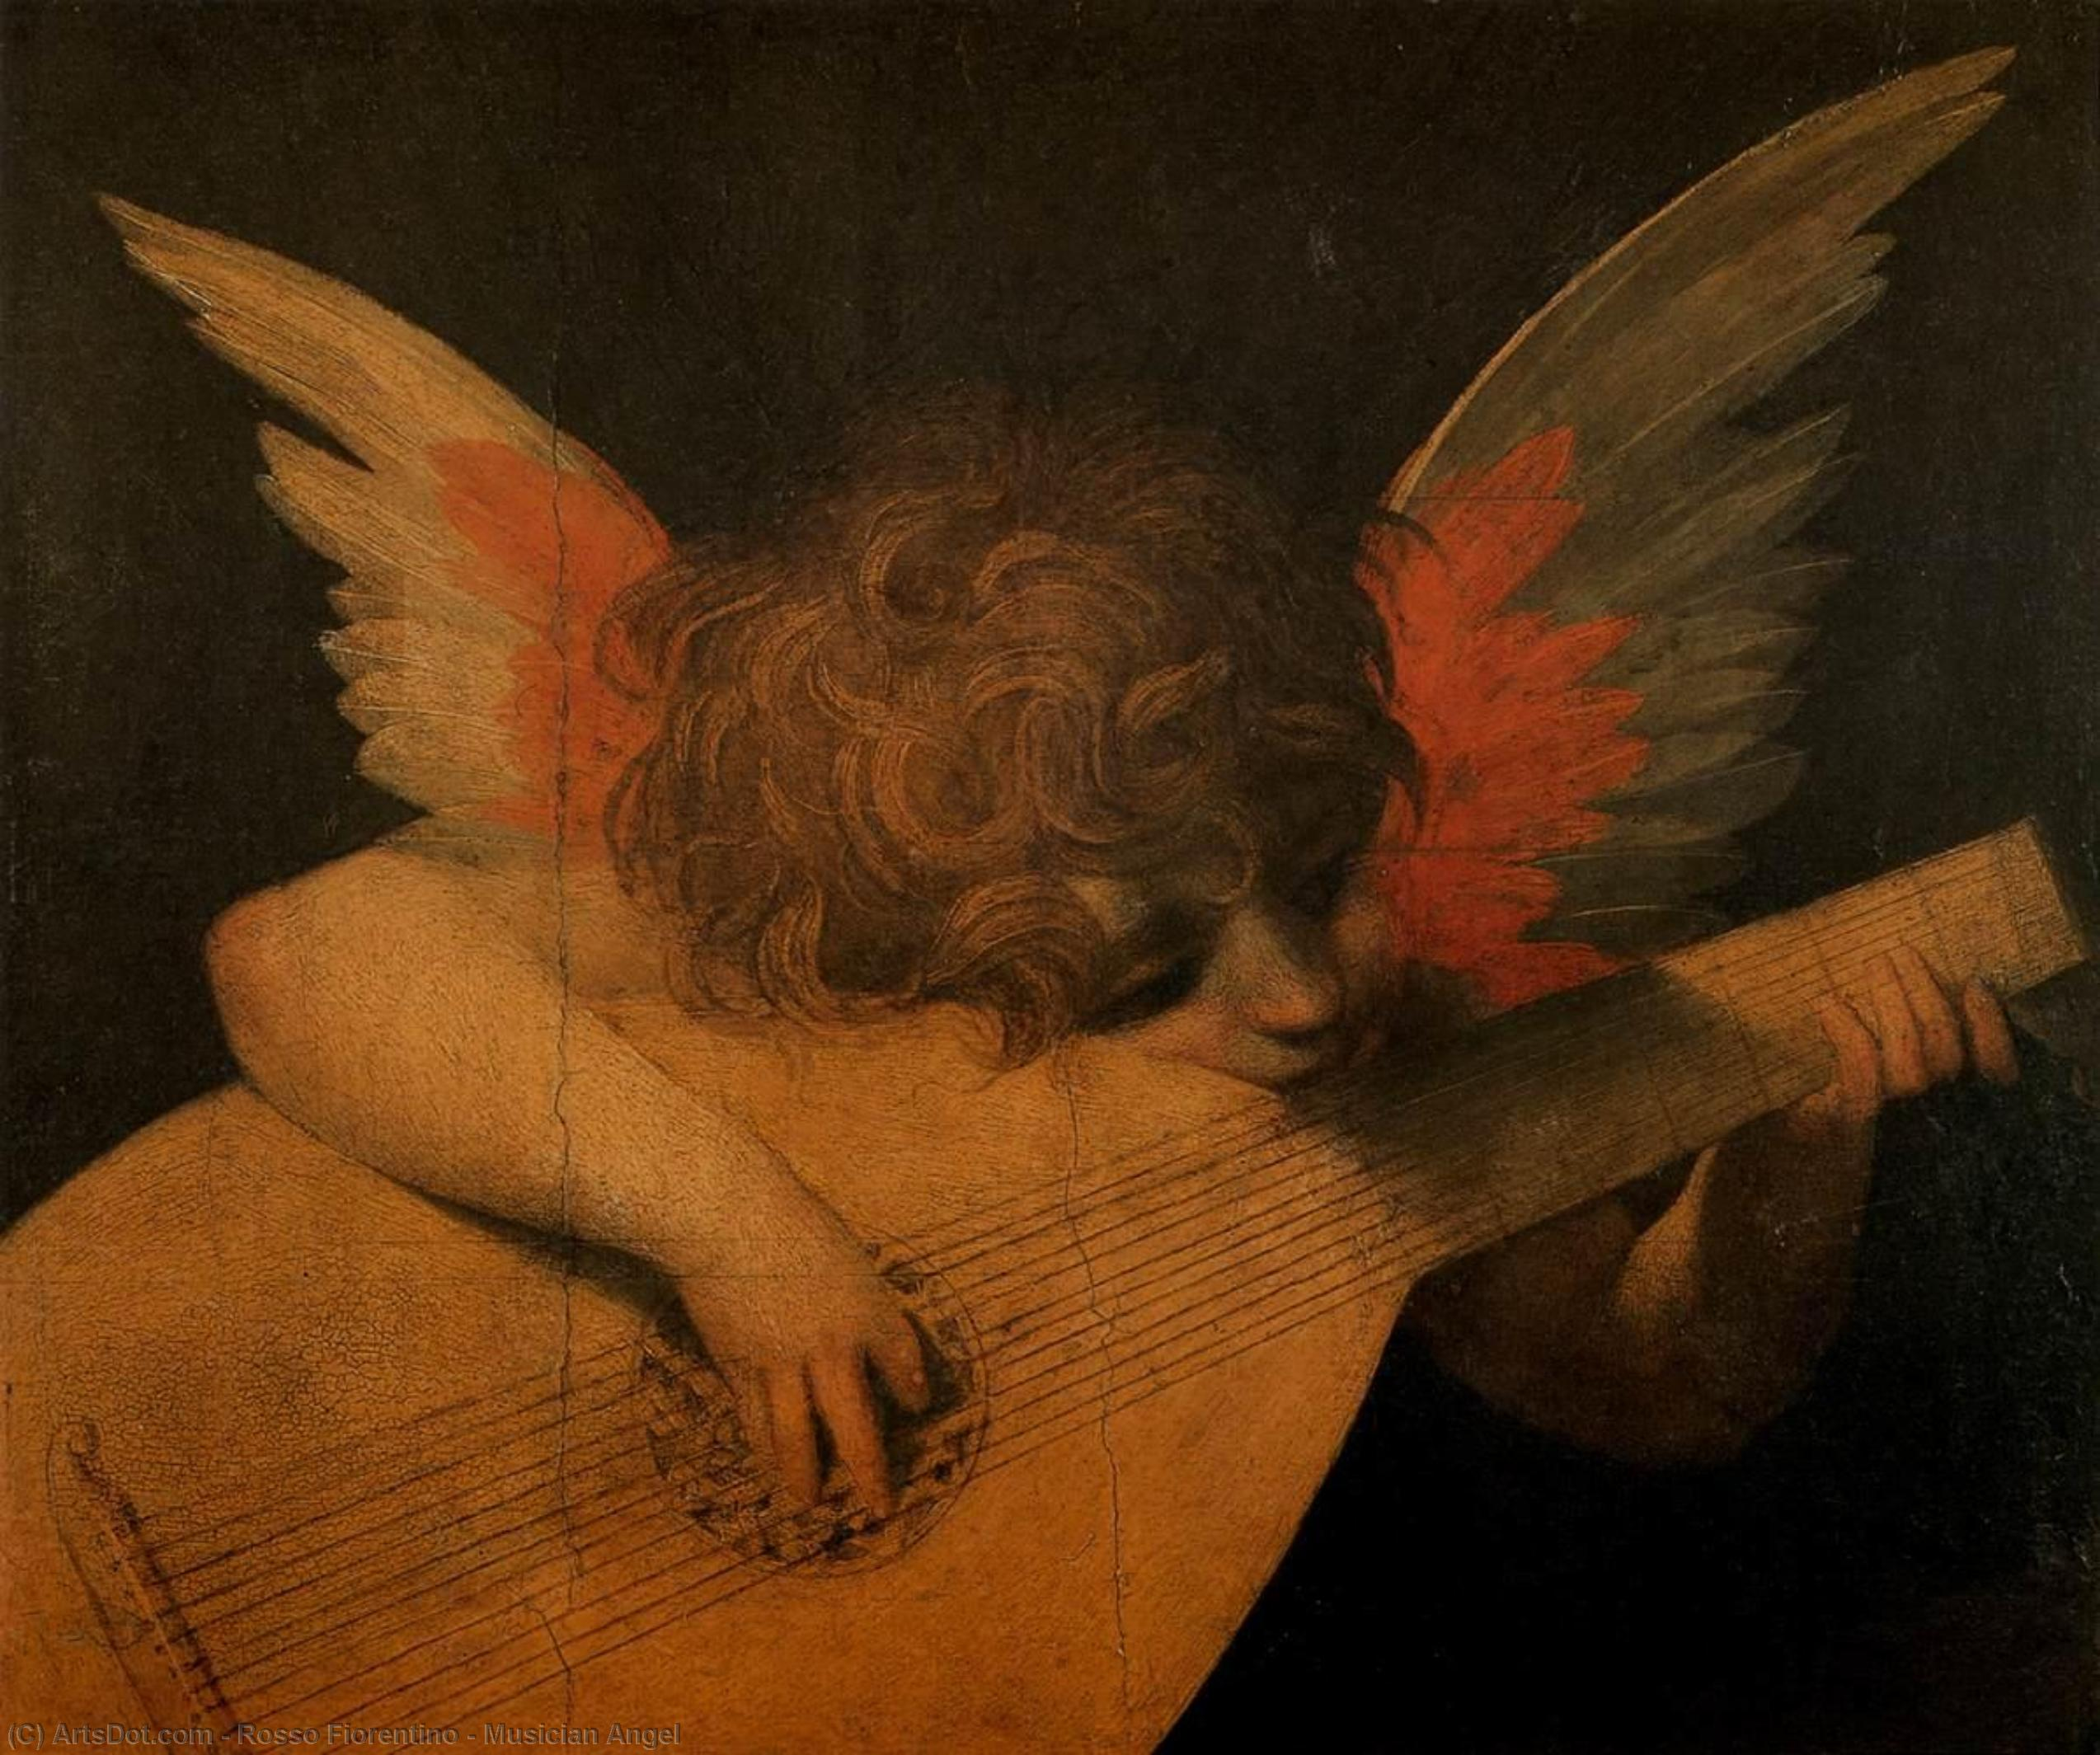 Wikioo.org - The Encyclopedia of Fine Arts - Painting, Artwork by Rosso Fiorentino - Musician Angel